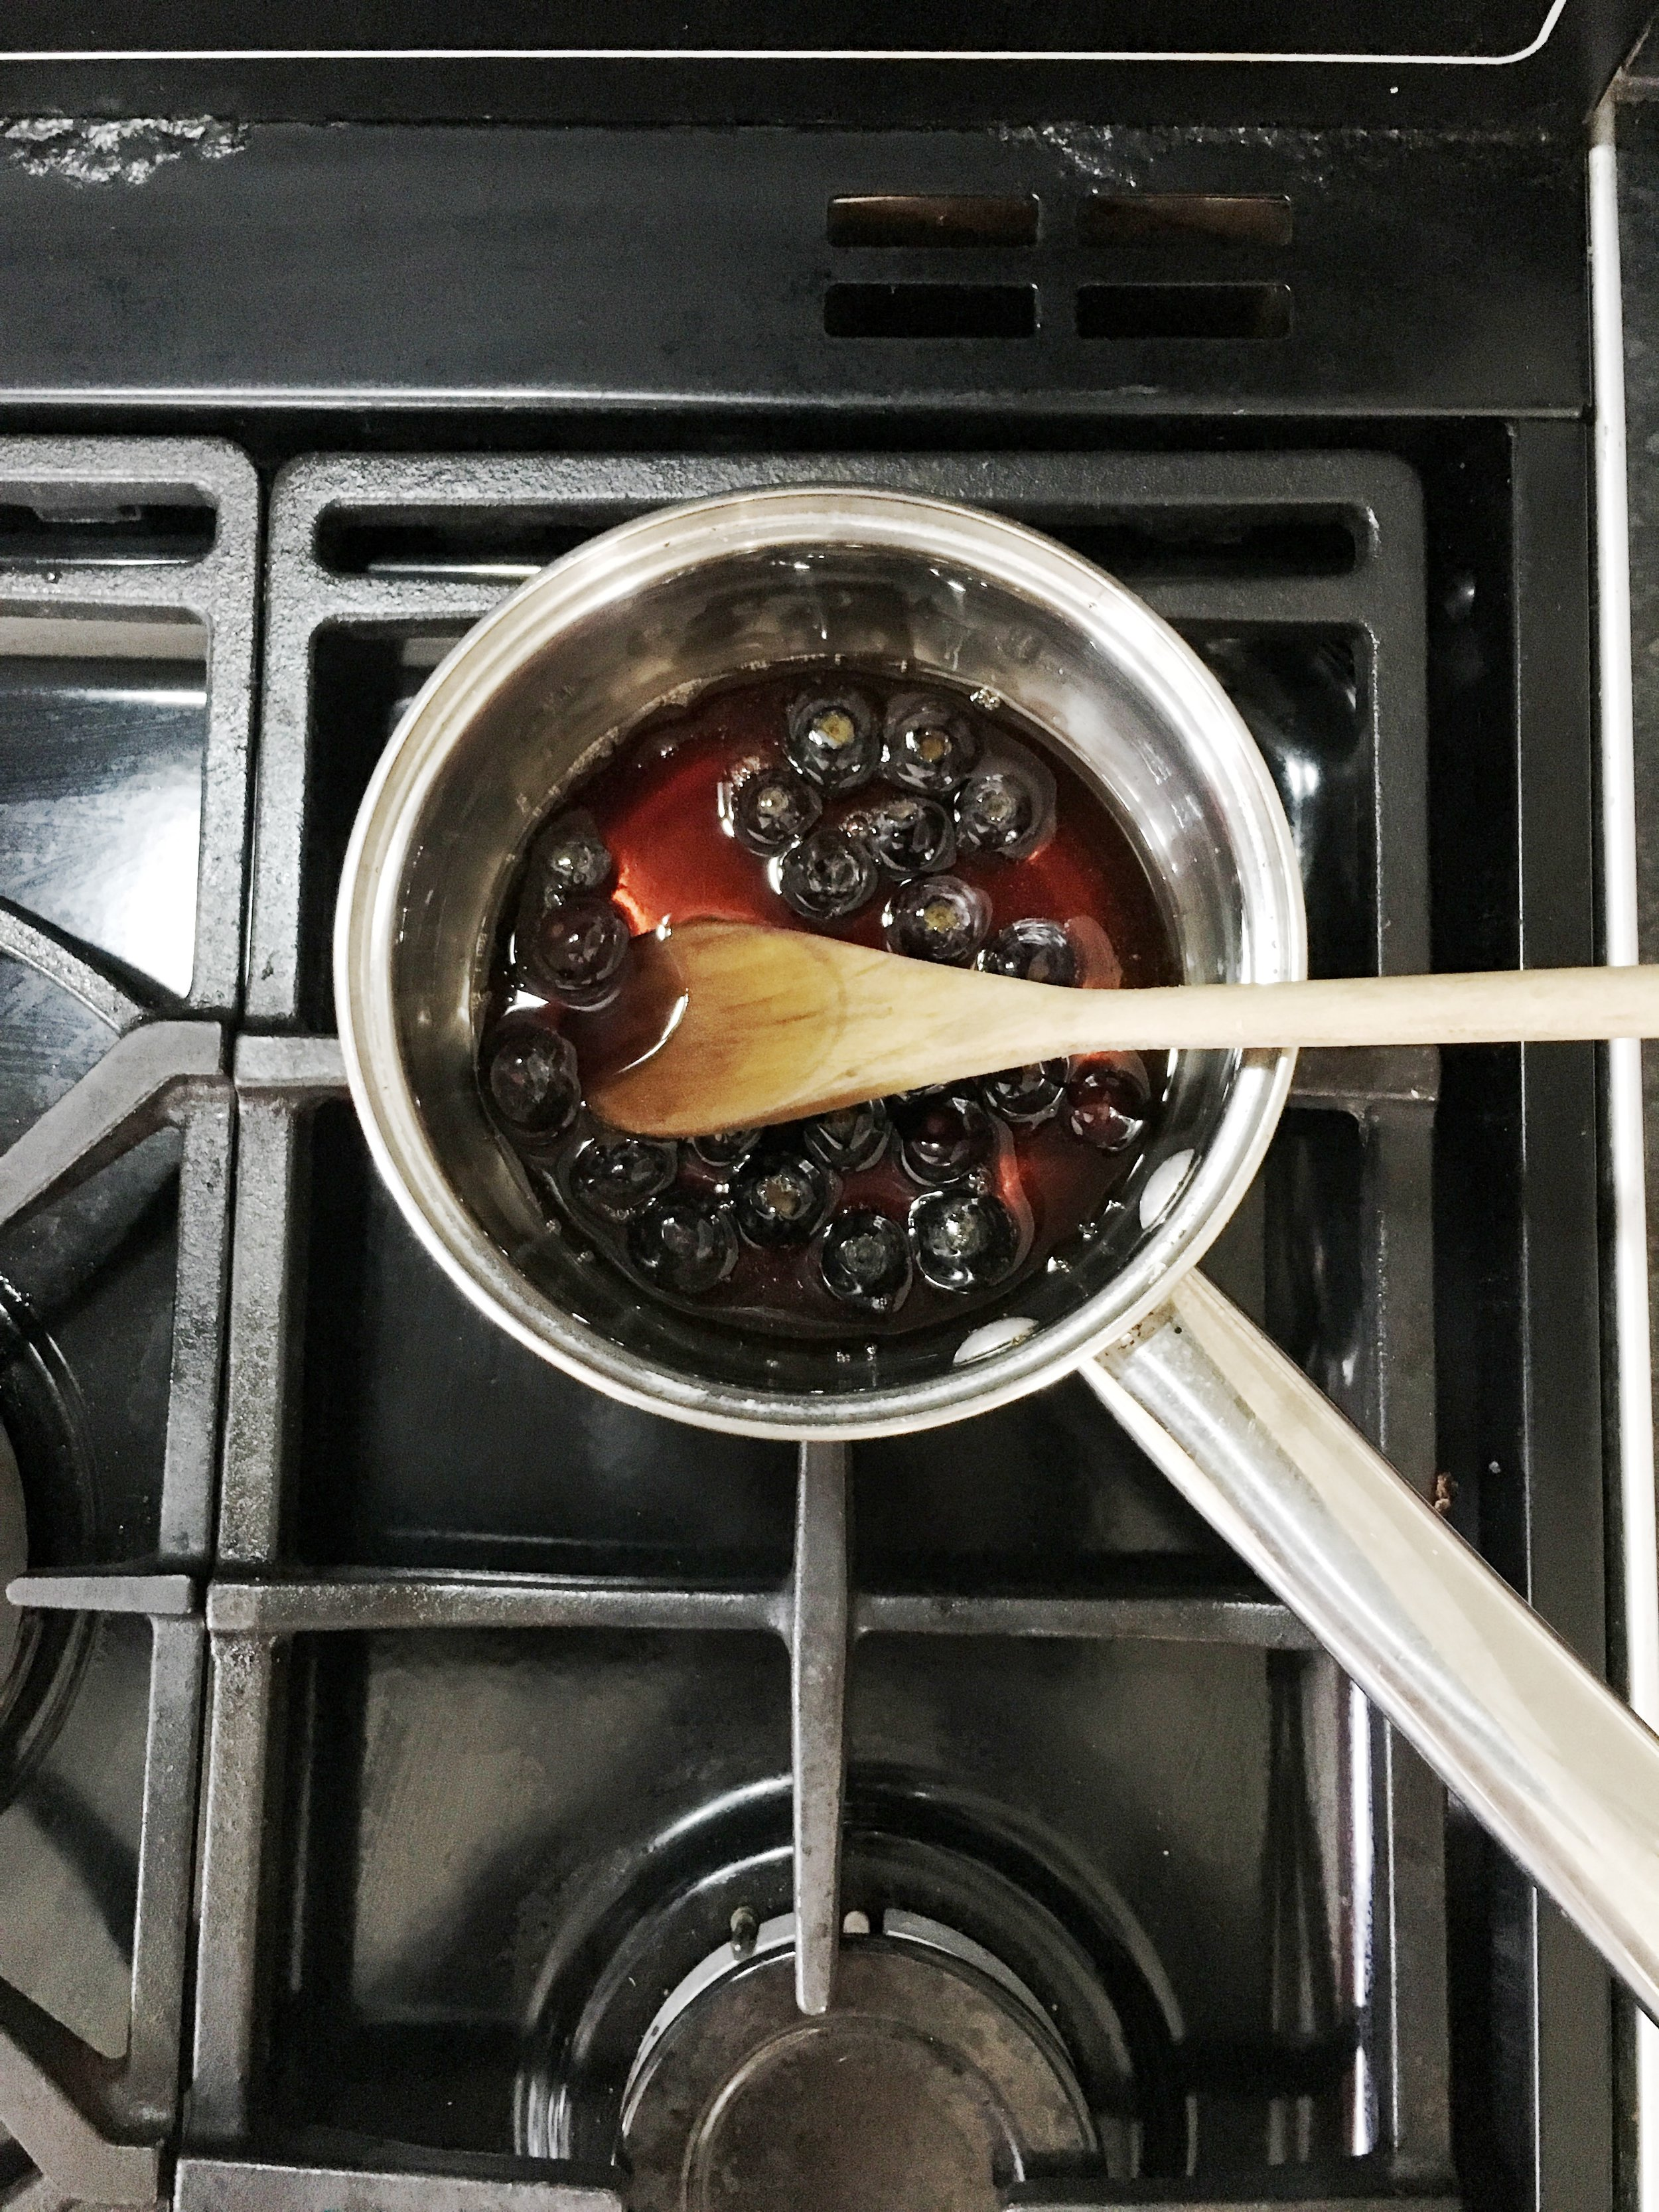 Blueberries and maple syrup in a pan. Heat gently and simmer to make blueberry syrup